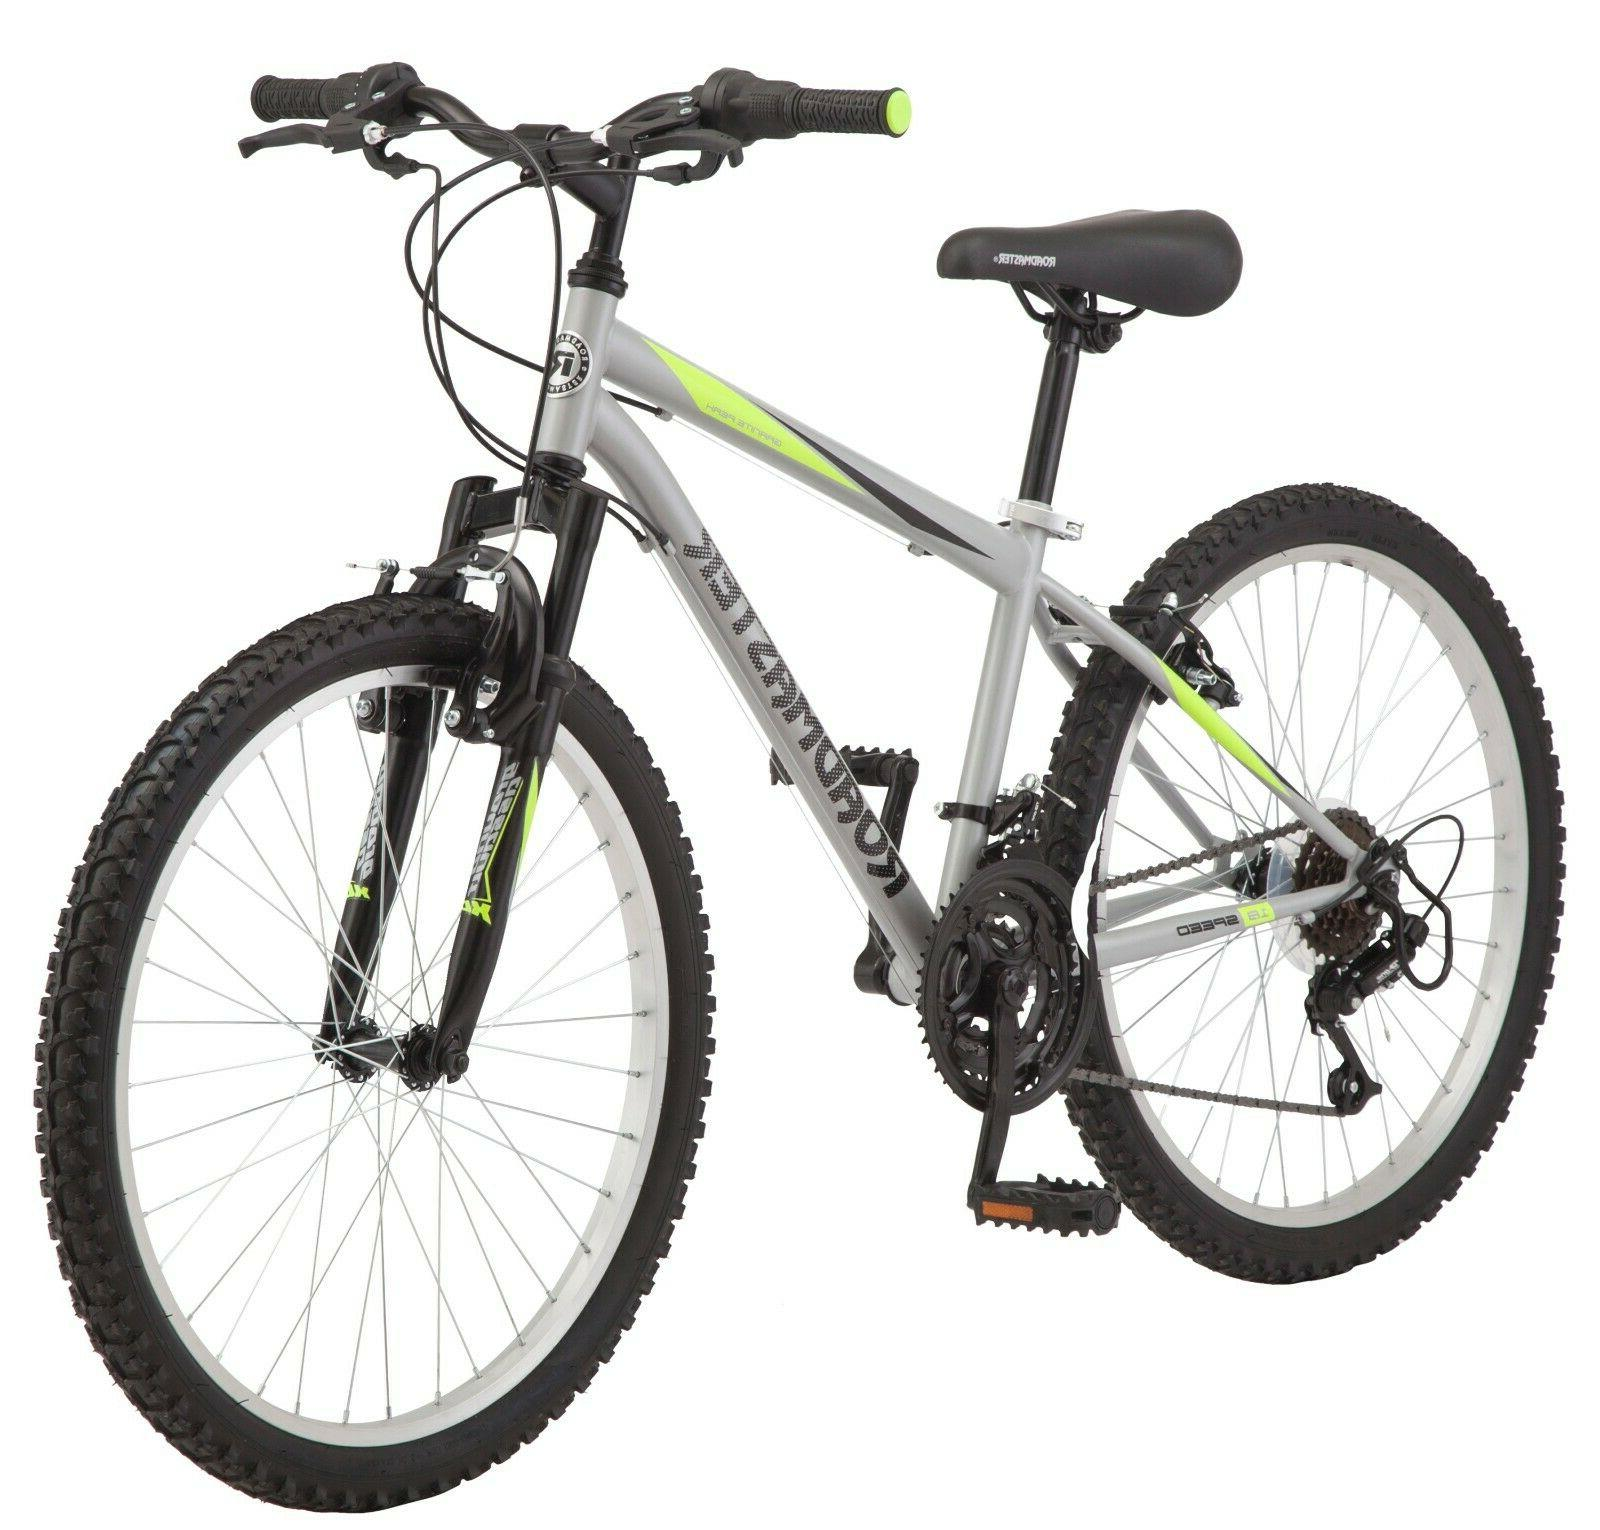 New Roadmaster Granite Peak Boy's Mountain Bike, 24-inch whe